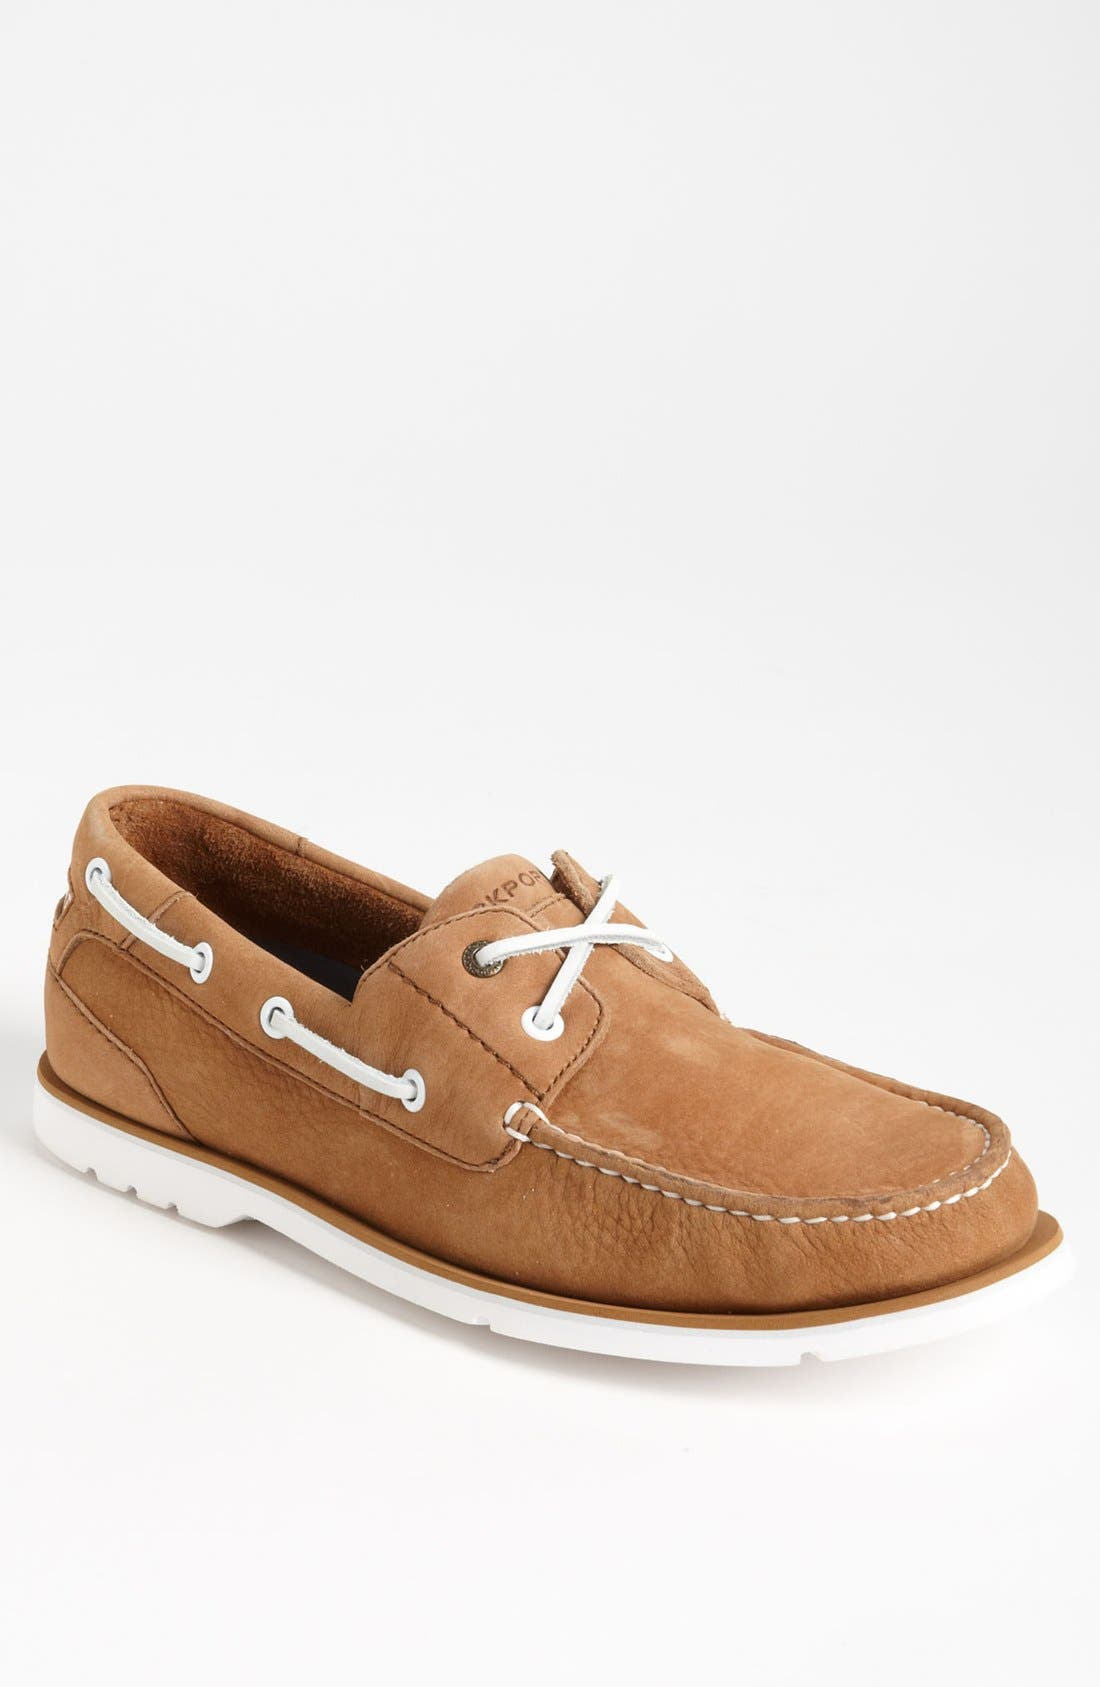 Alternate Image 1 Selected - Rockport 'Summer Tour' Boat Shoe